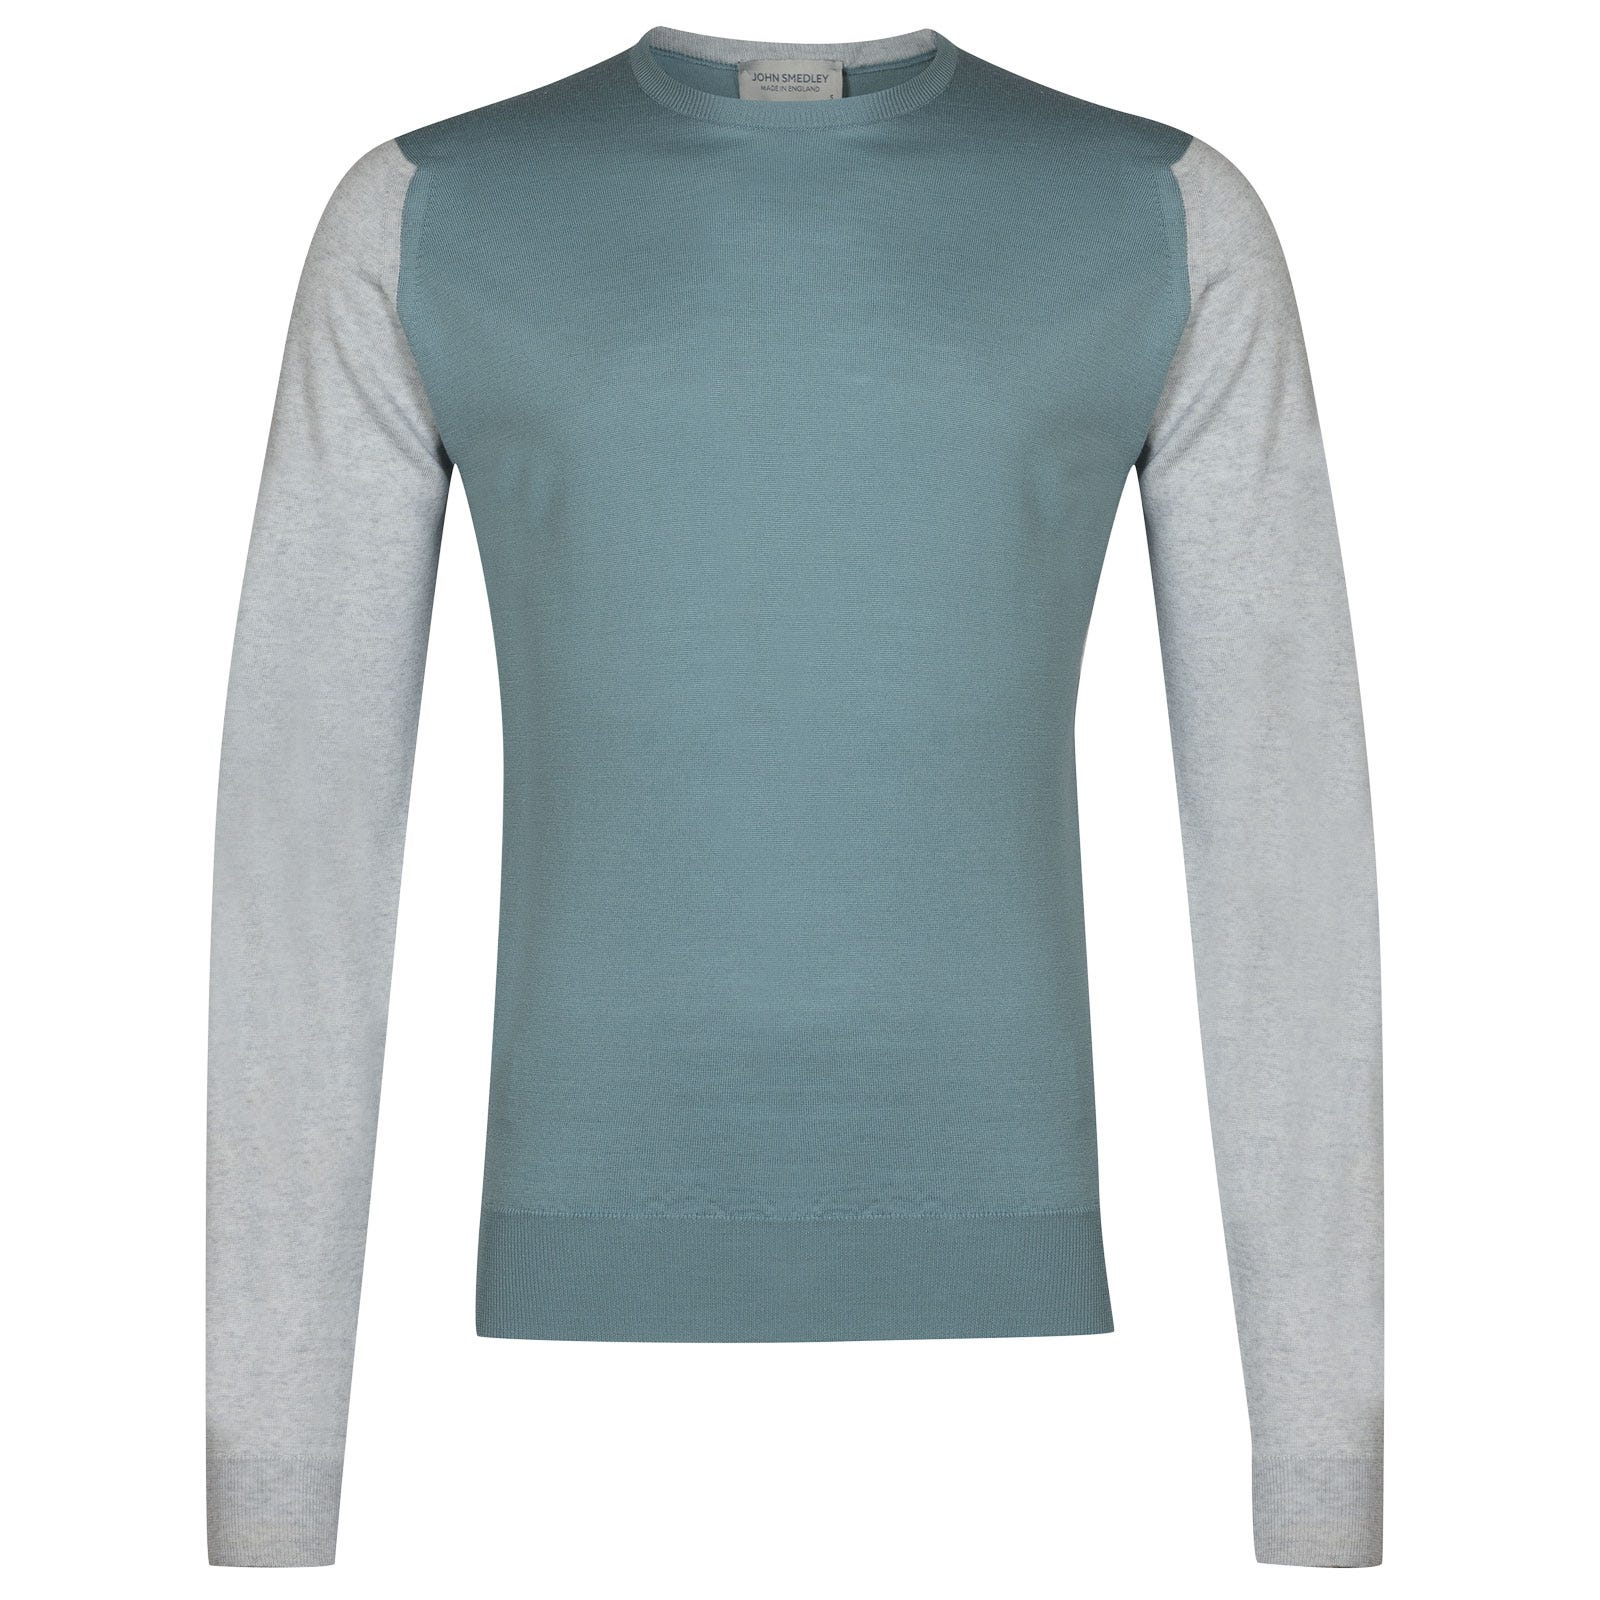 John Smedley hindlow Merino Wool Pullover in Bardot Grey/Summit Blue-M